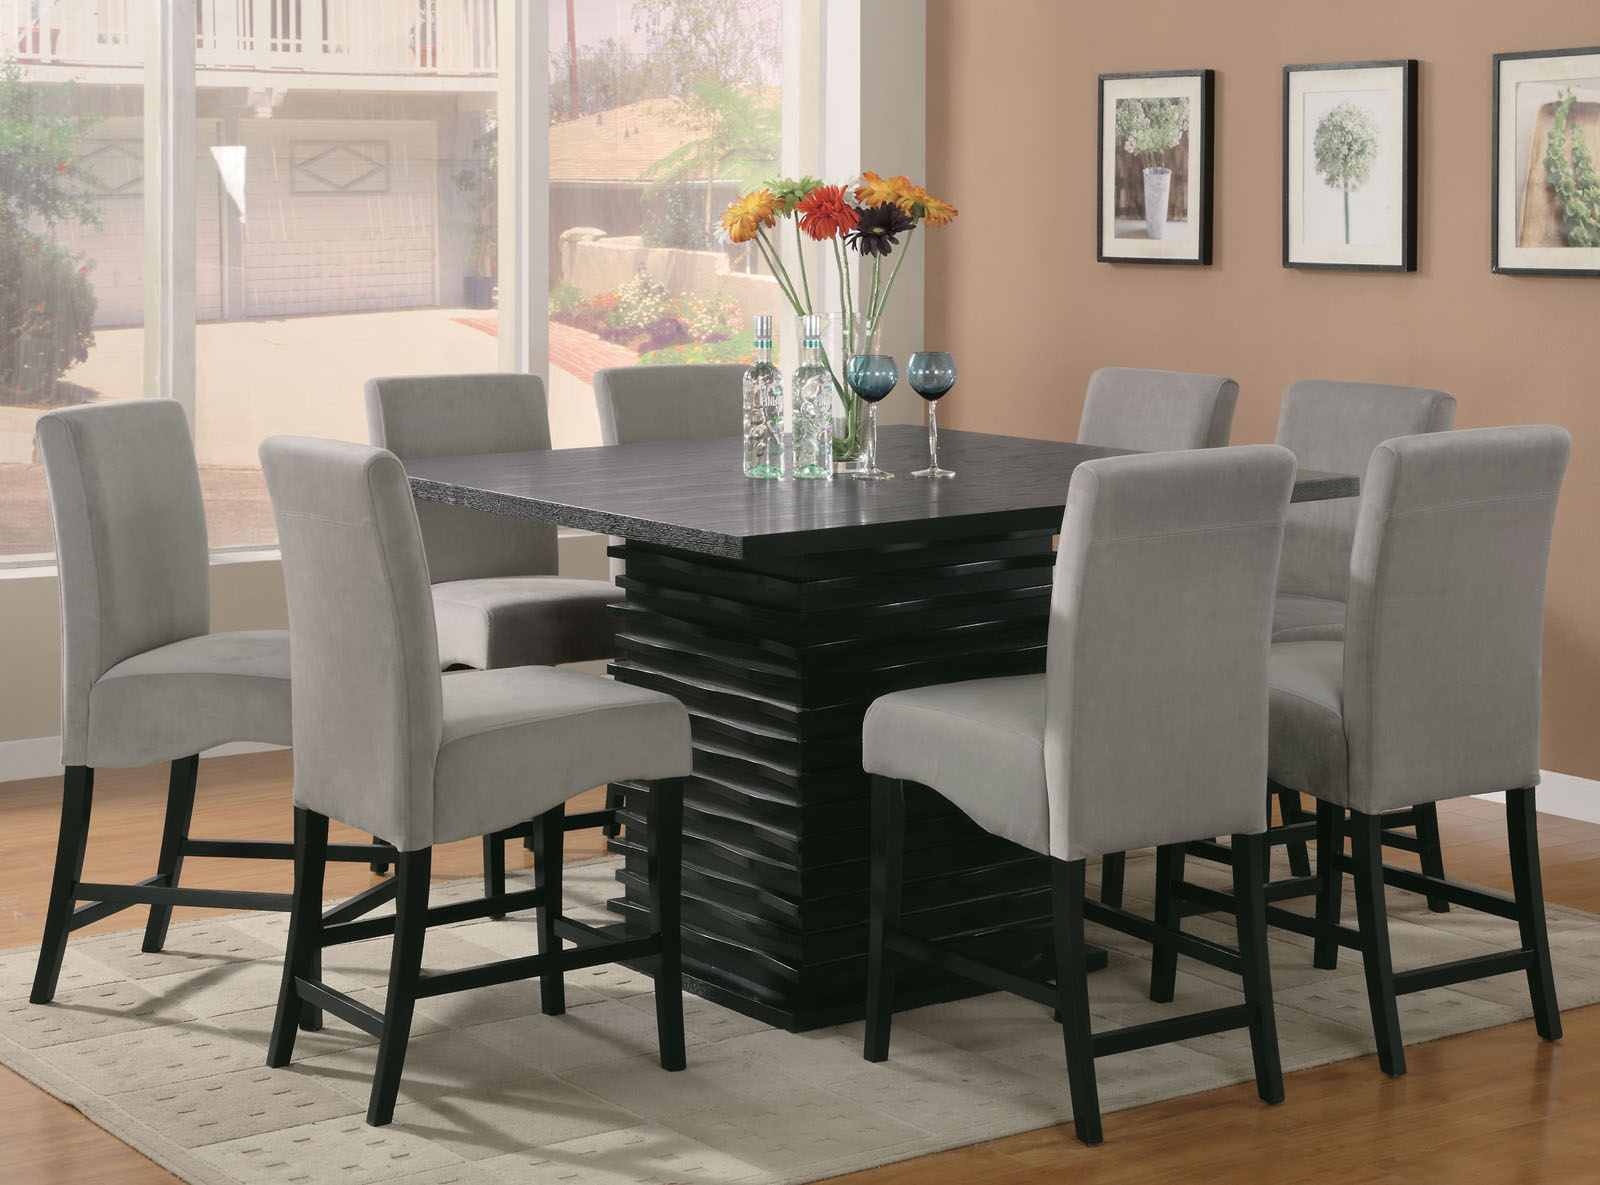 https://www.diningroomsoutlet.com/media/catalog/product/1/0/102068-102069gry_2.jpg